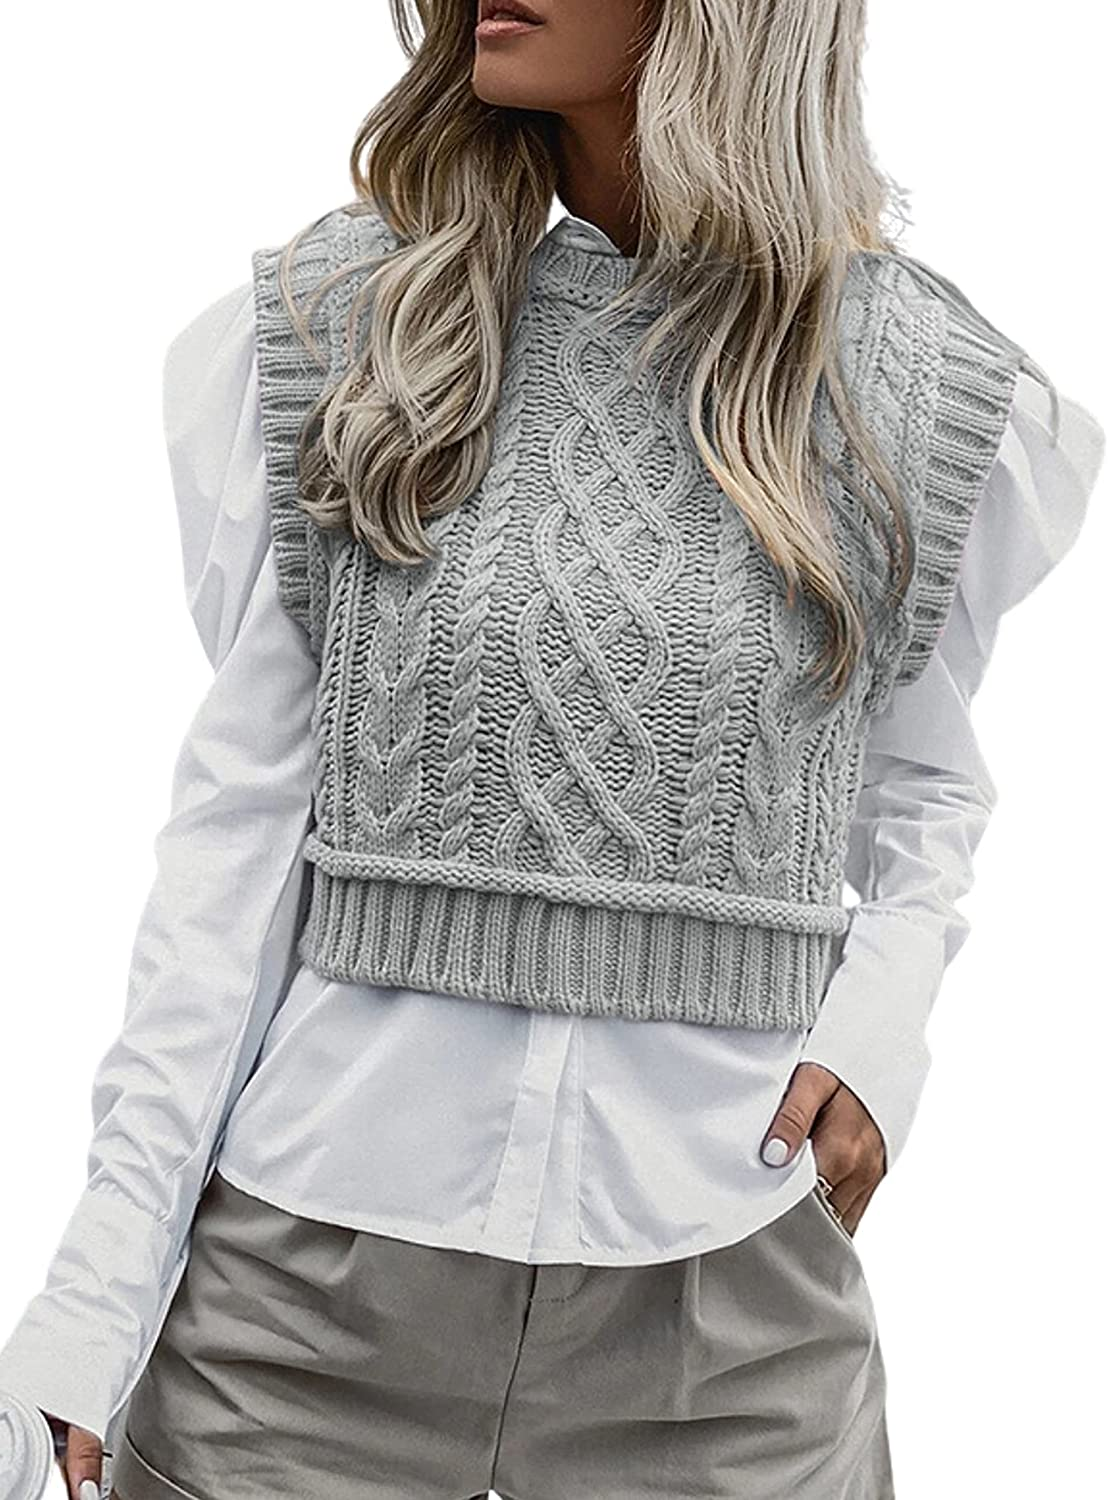 Dqbeng Women's Preppy Cable Knit Vests Sleevel Sweater New arrival Mock Milwaukee Mall Neck